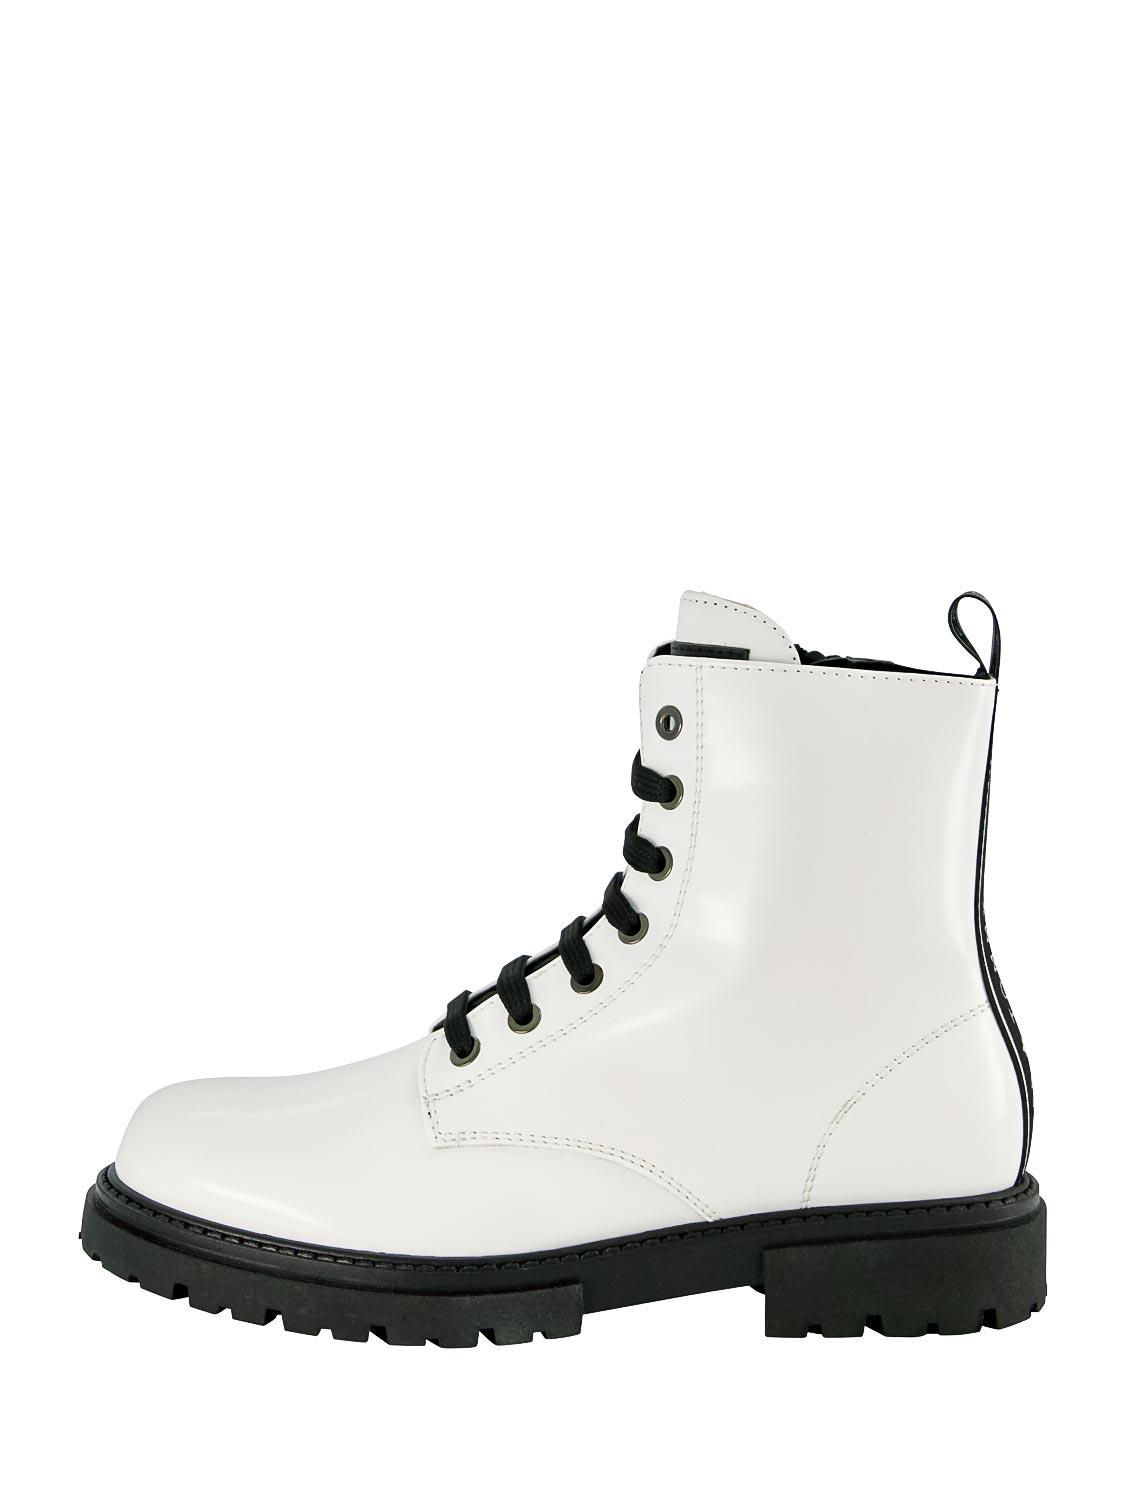 TOMMY HILFIGER Boots white for girls